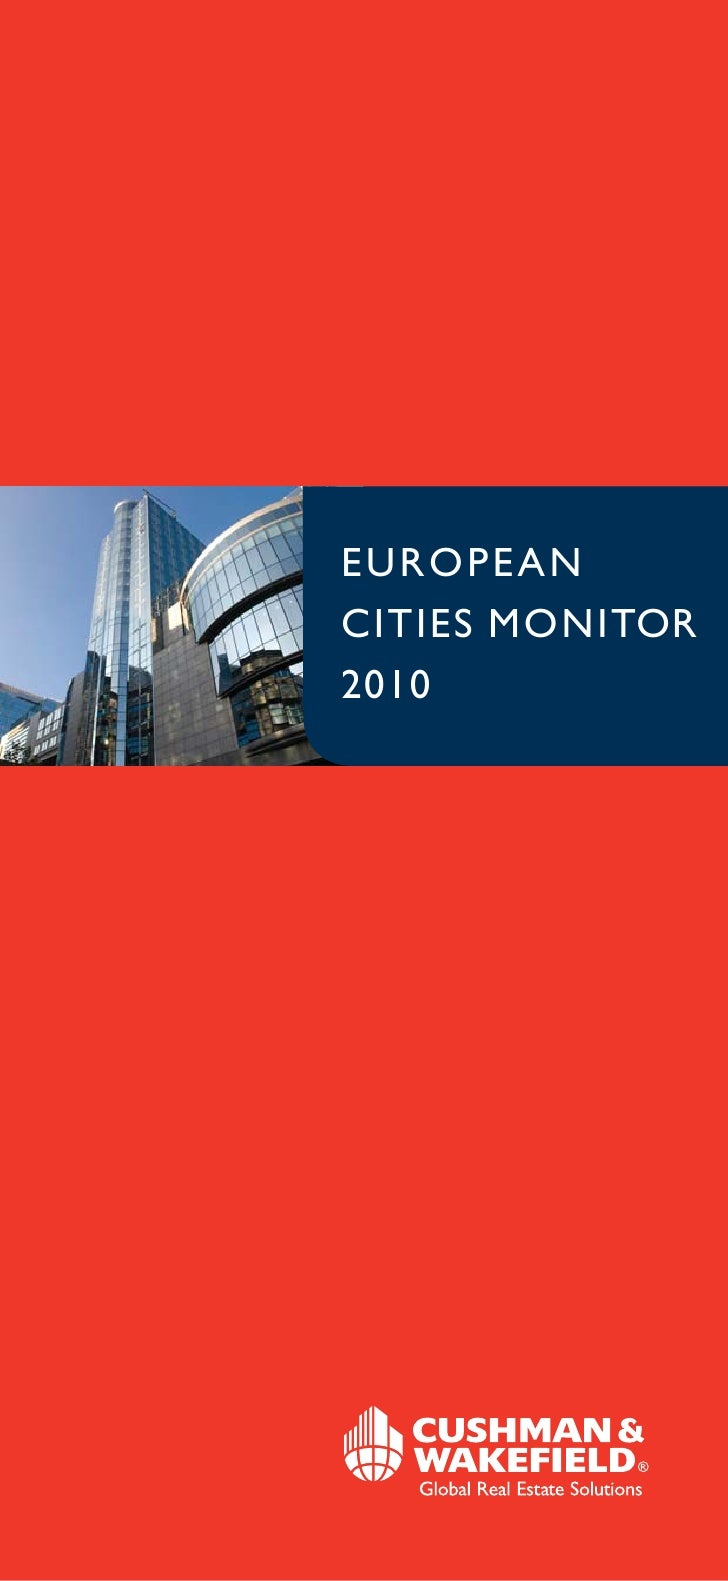 EUROPEANCITIES MONITOR2010